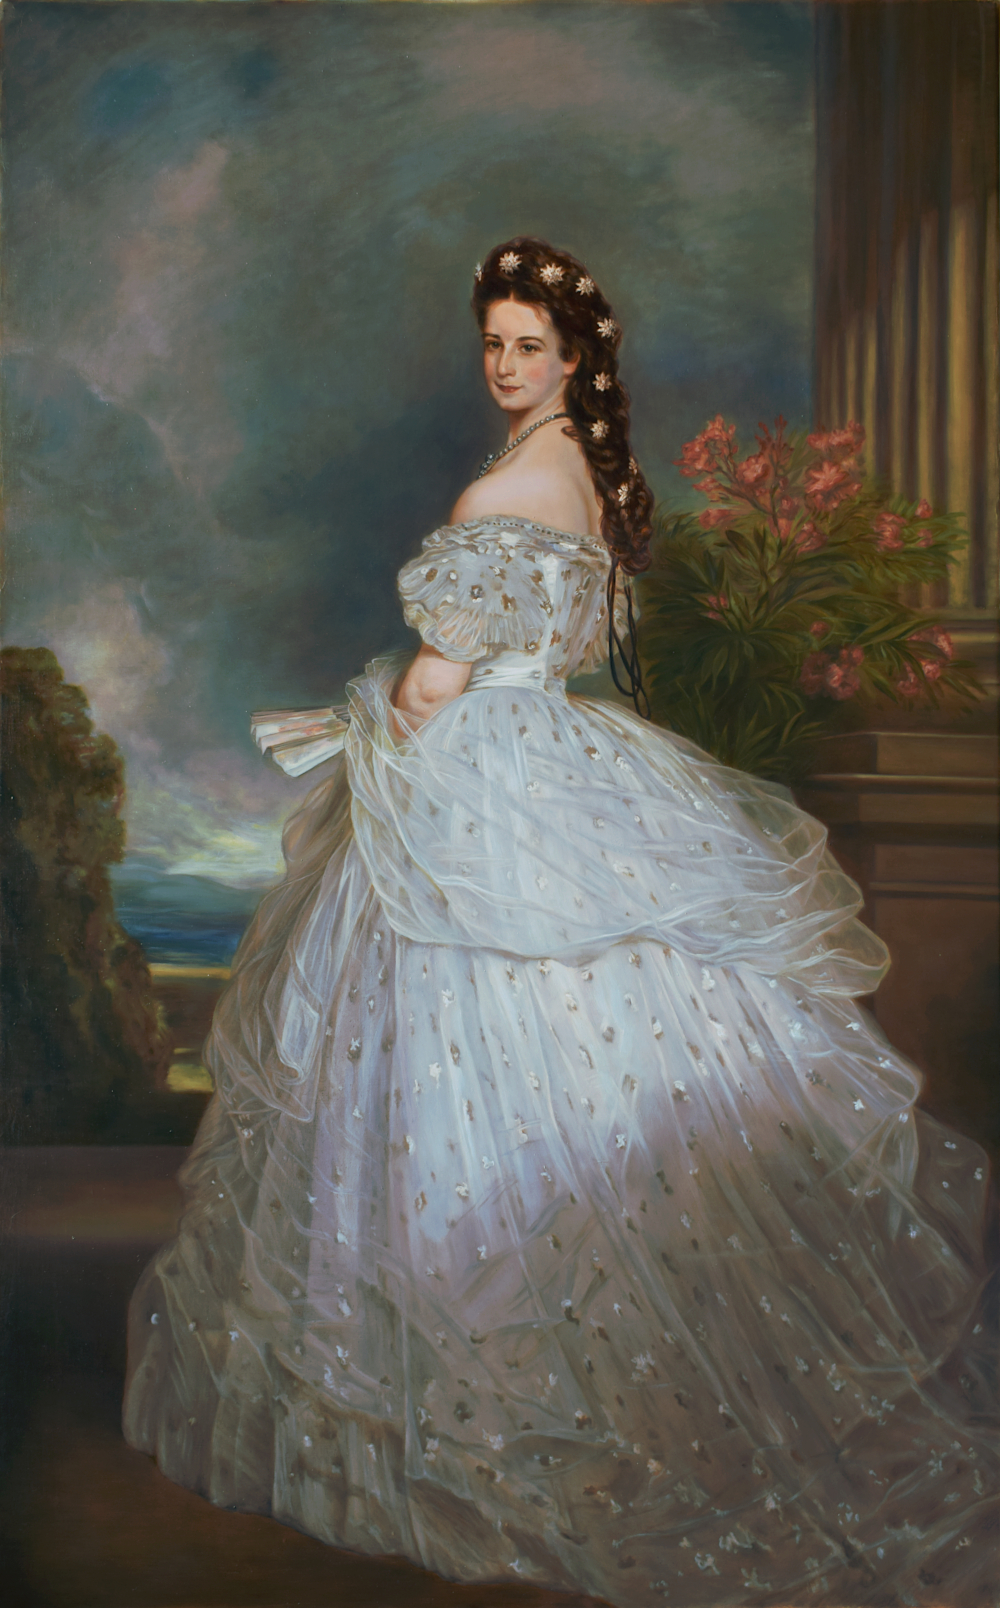 Copy of the painting Empress Elisabeth of Austria in Courtly Gala Dress with Diamond Stars